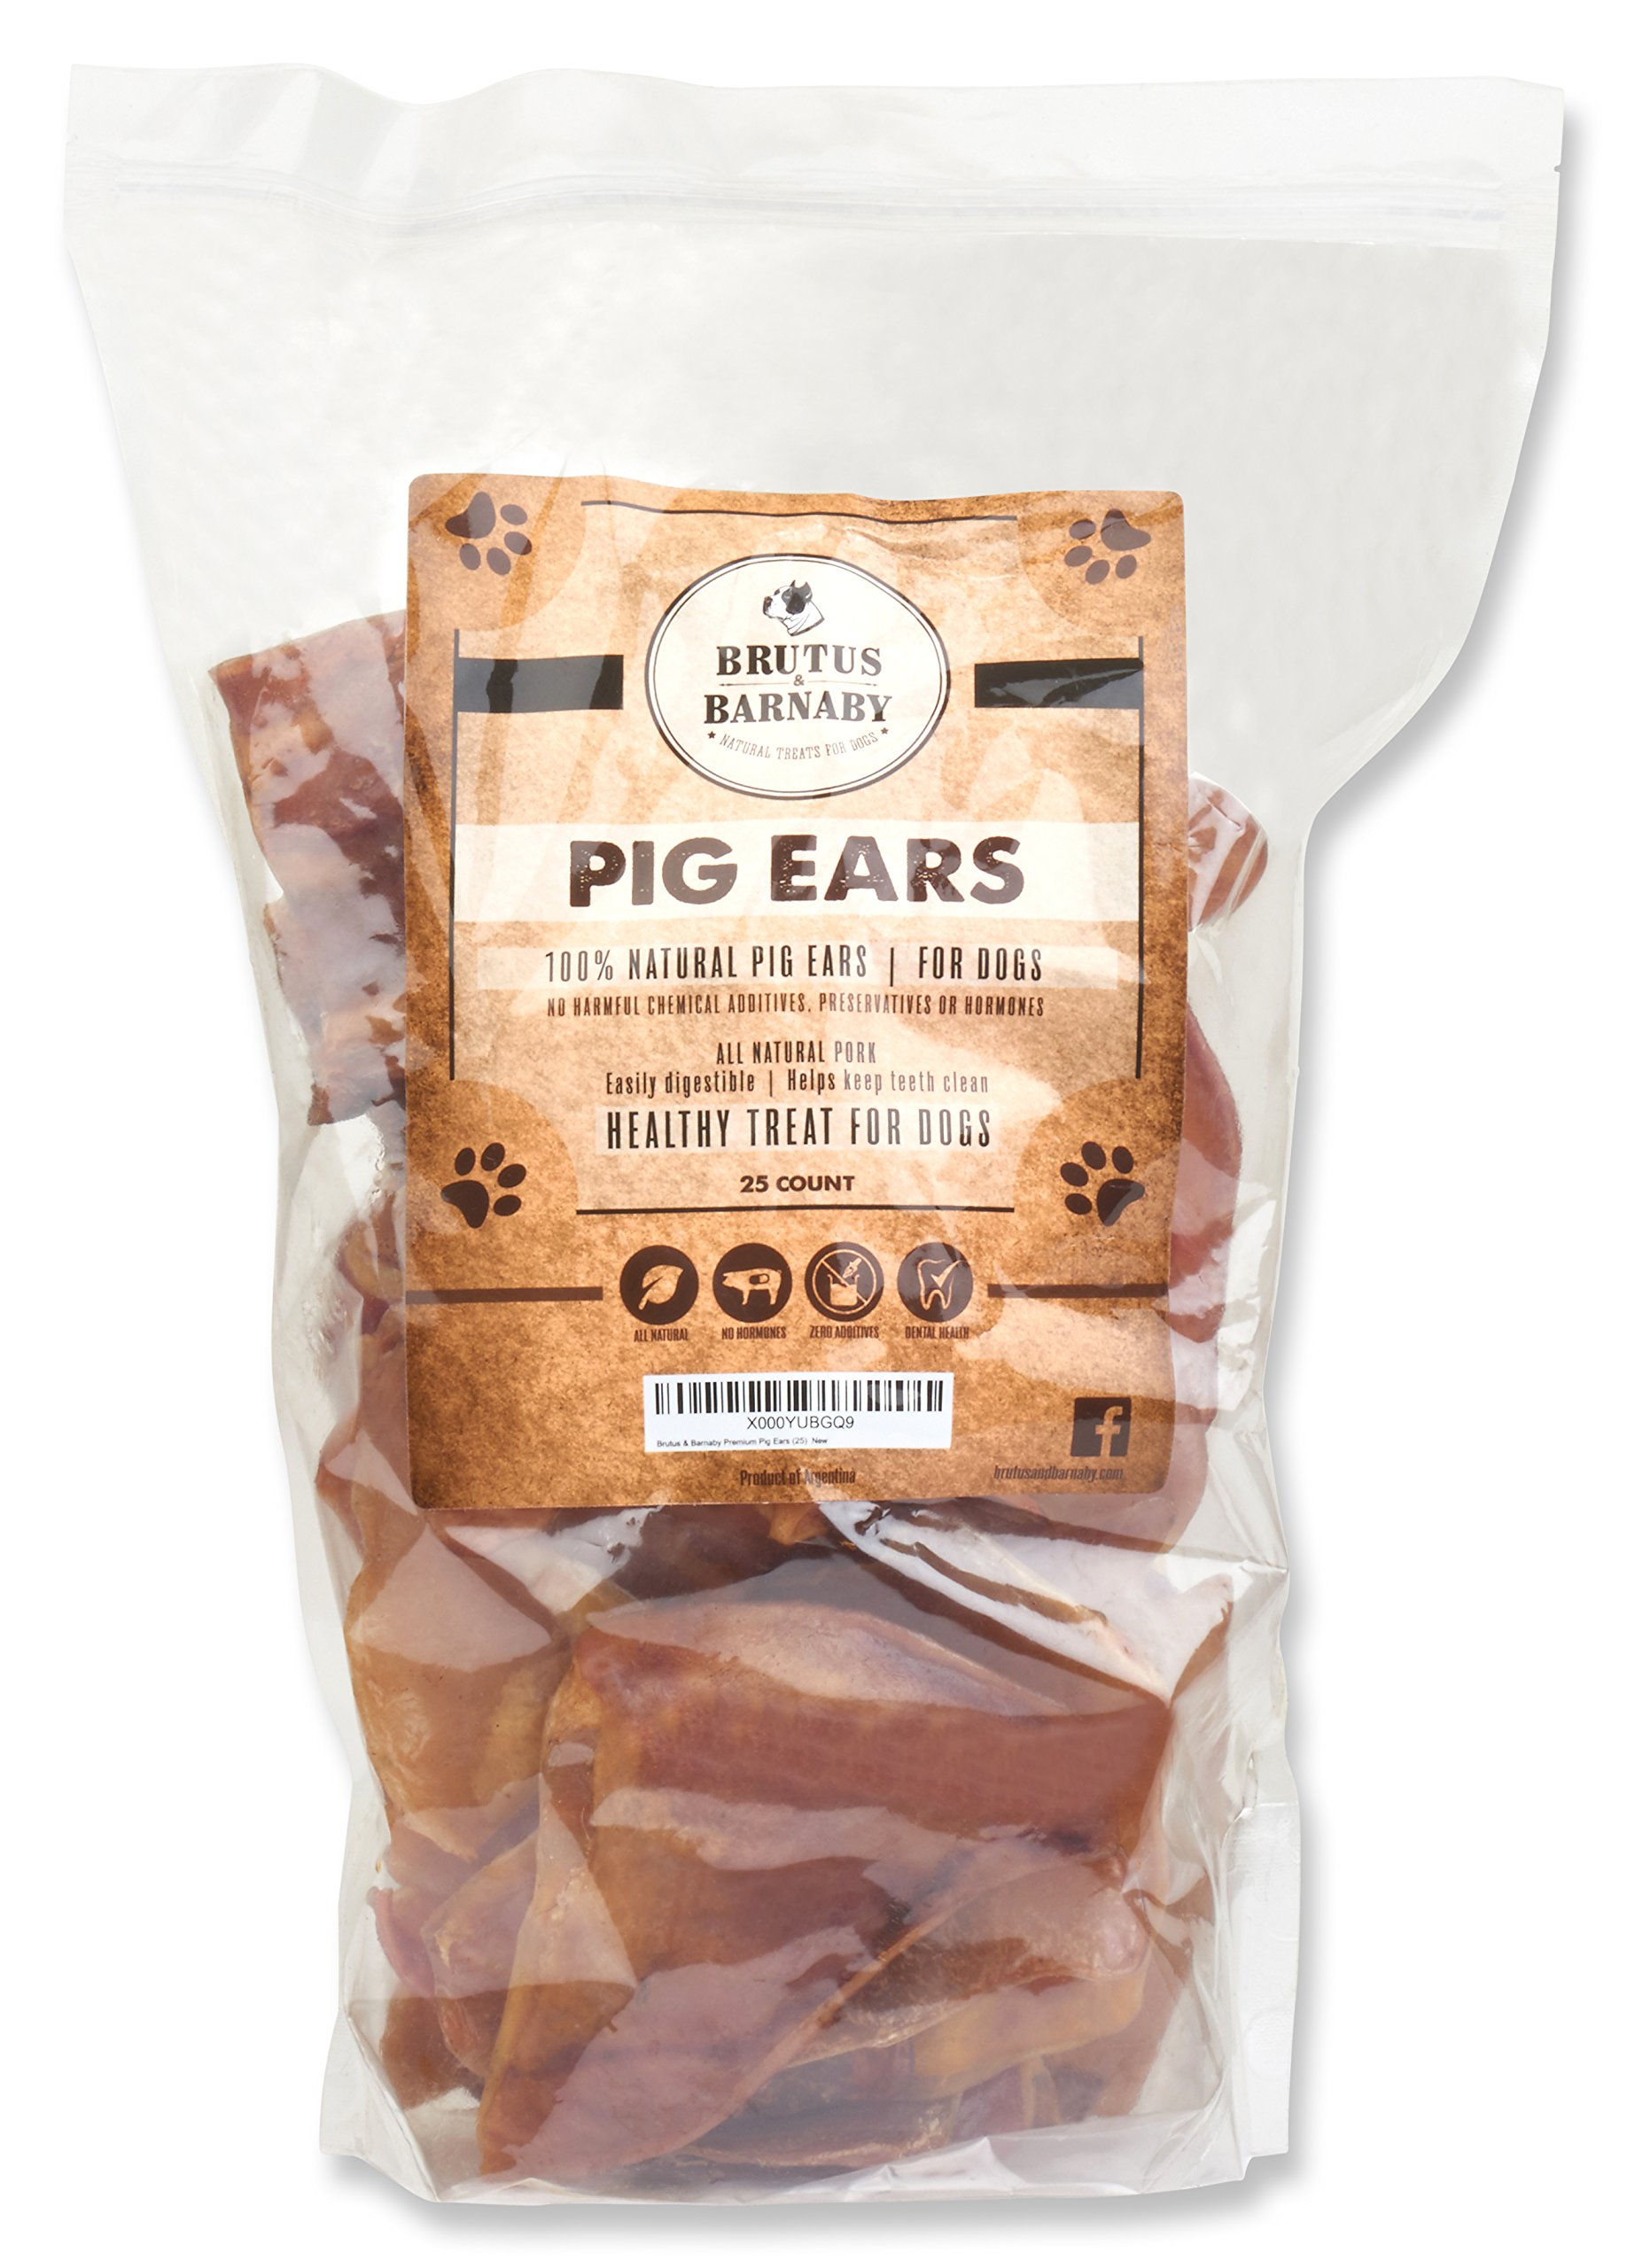 100% Natural Whole Pig Ear Dog Treat (25 Count), Brutus & Barnaby's Healthy, Pure Pork Ear is Easily Digestible with No Added Colorings, Chemicals or Hormones